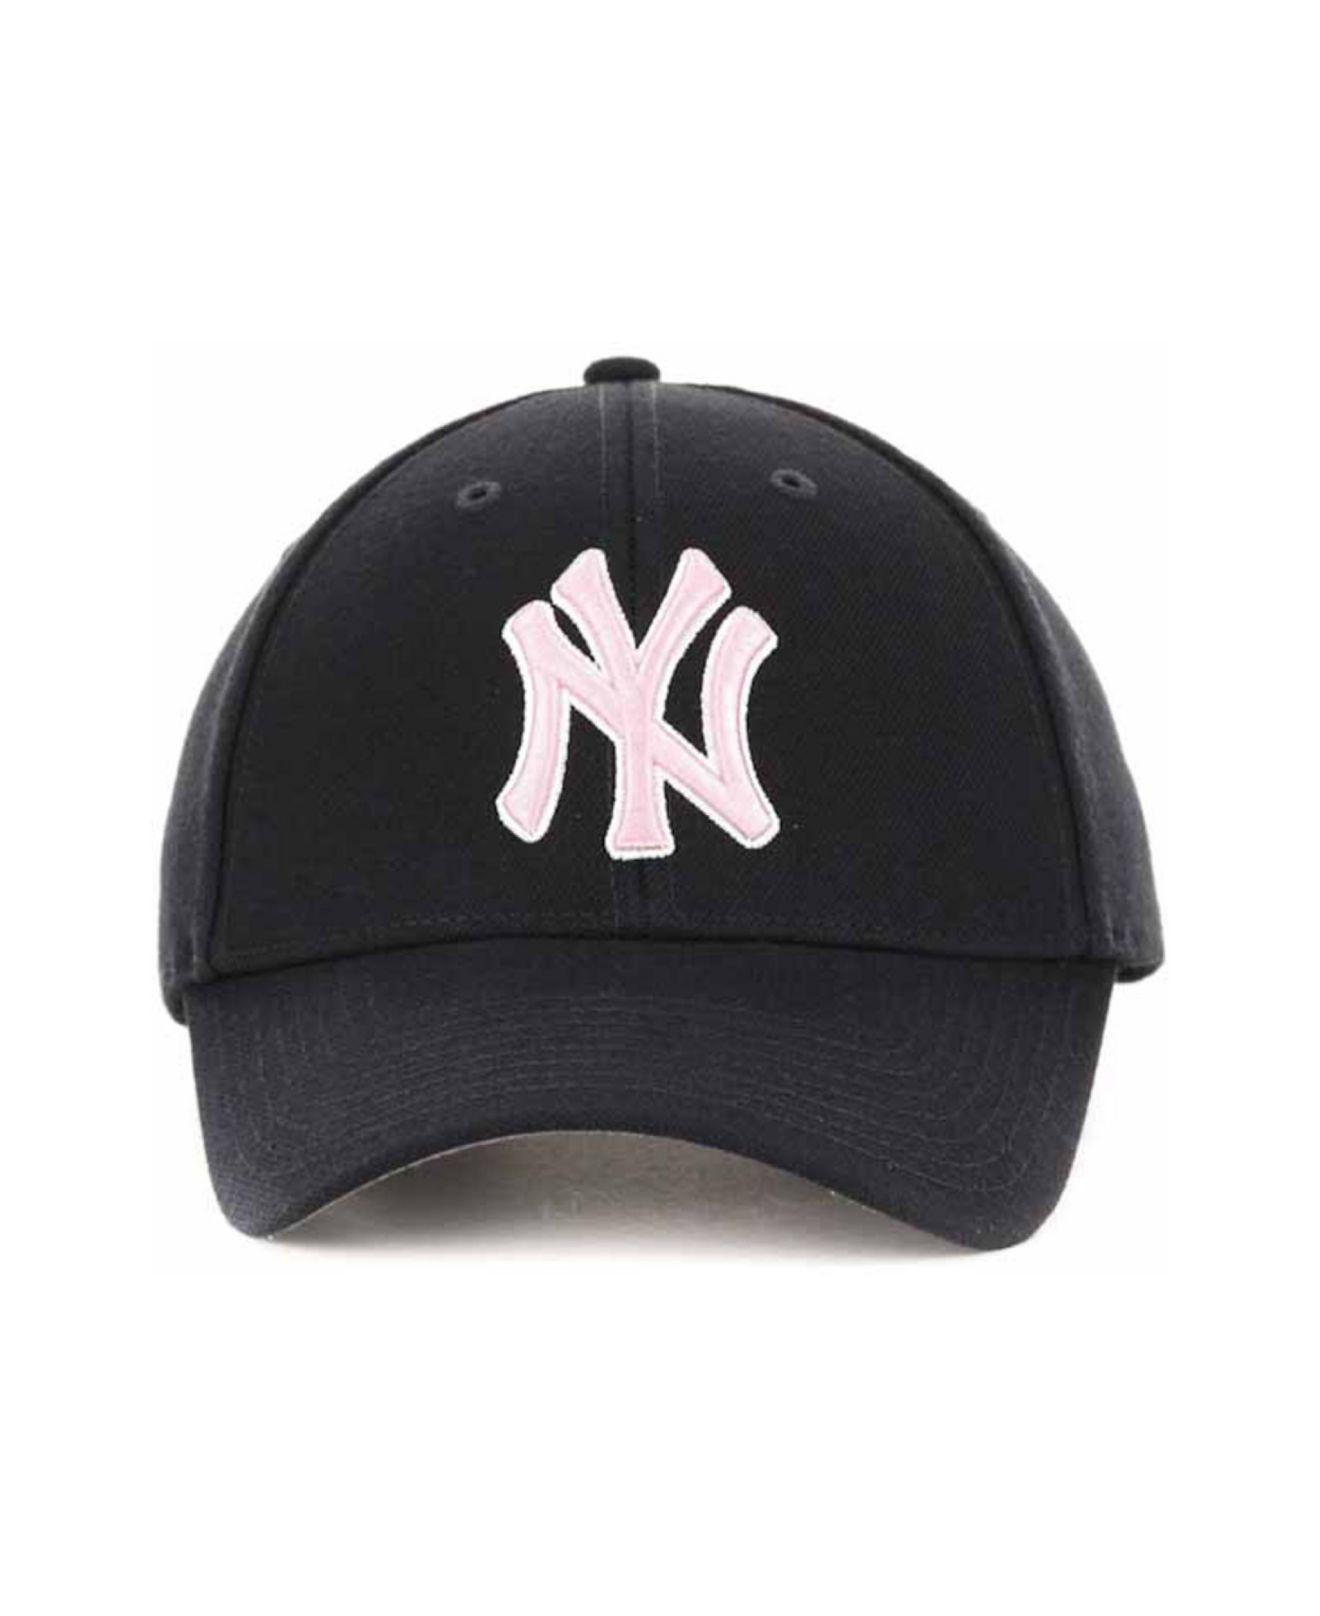 2c0074bff67 Lyst - 47 Brand New York Yankees Mvp Curved Cap in Blue for Men